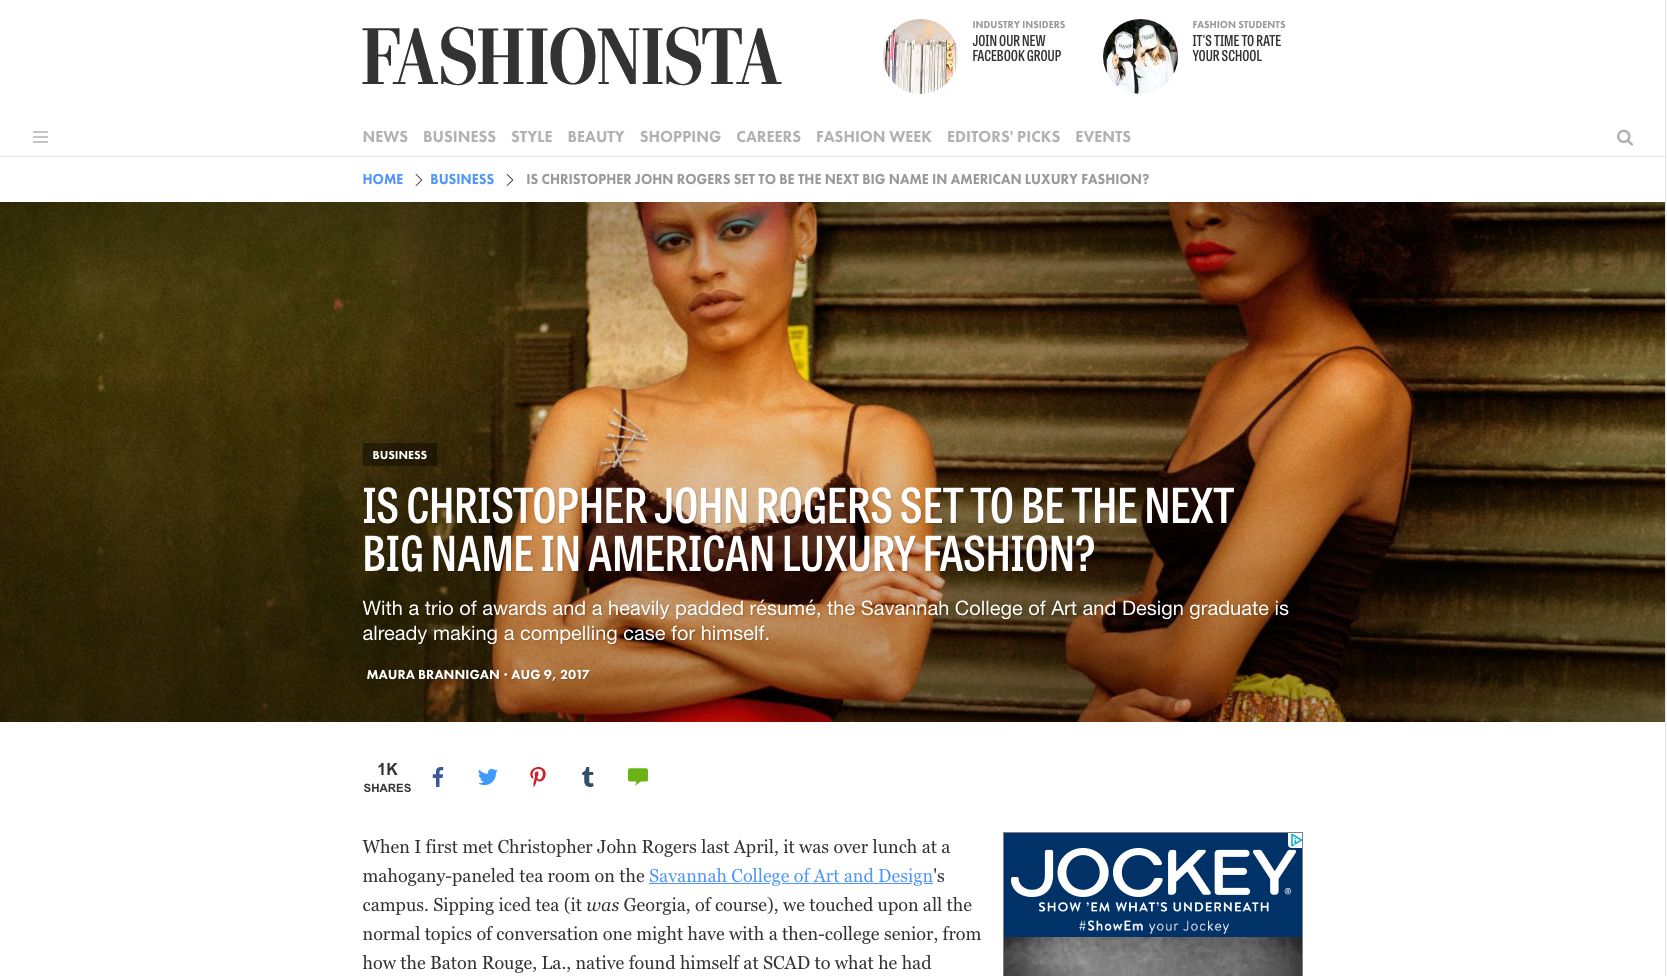 """Is Christopher John Rogers Set to be the Next Big Name in American Luxury Fashion?""    Fashionista.com, August 2017"